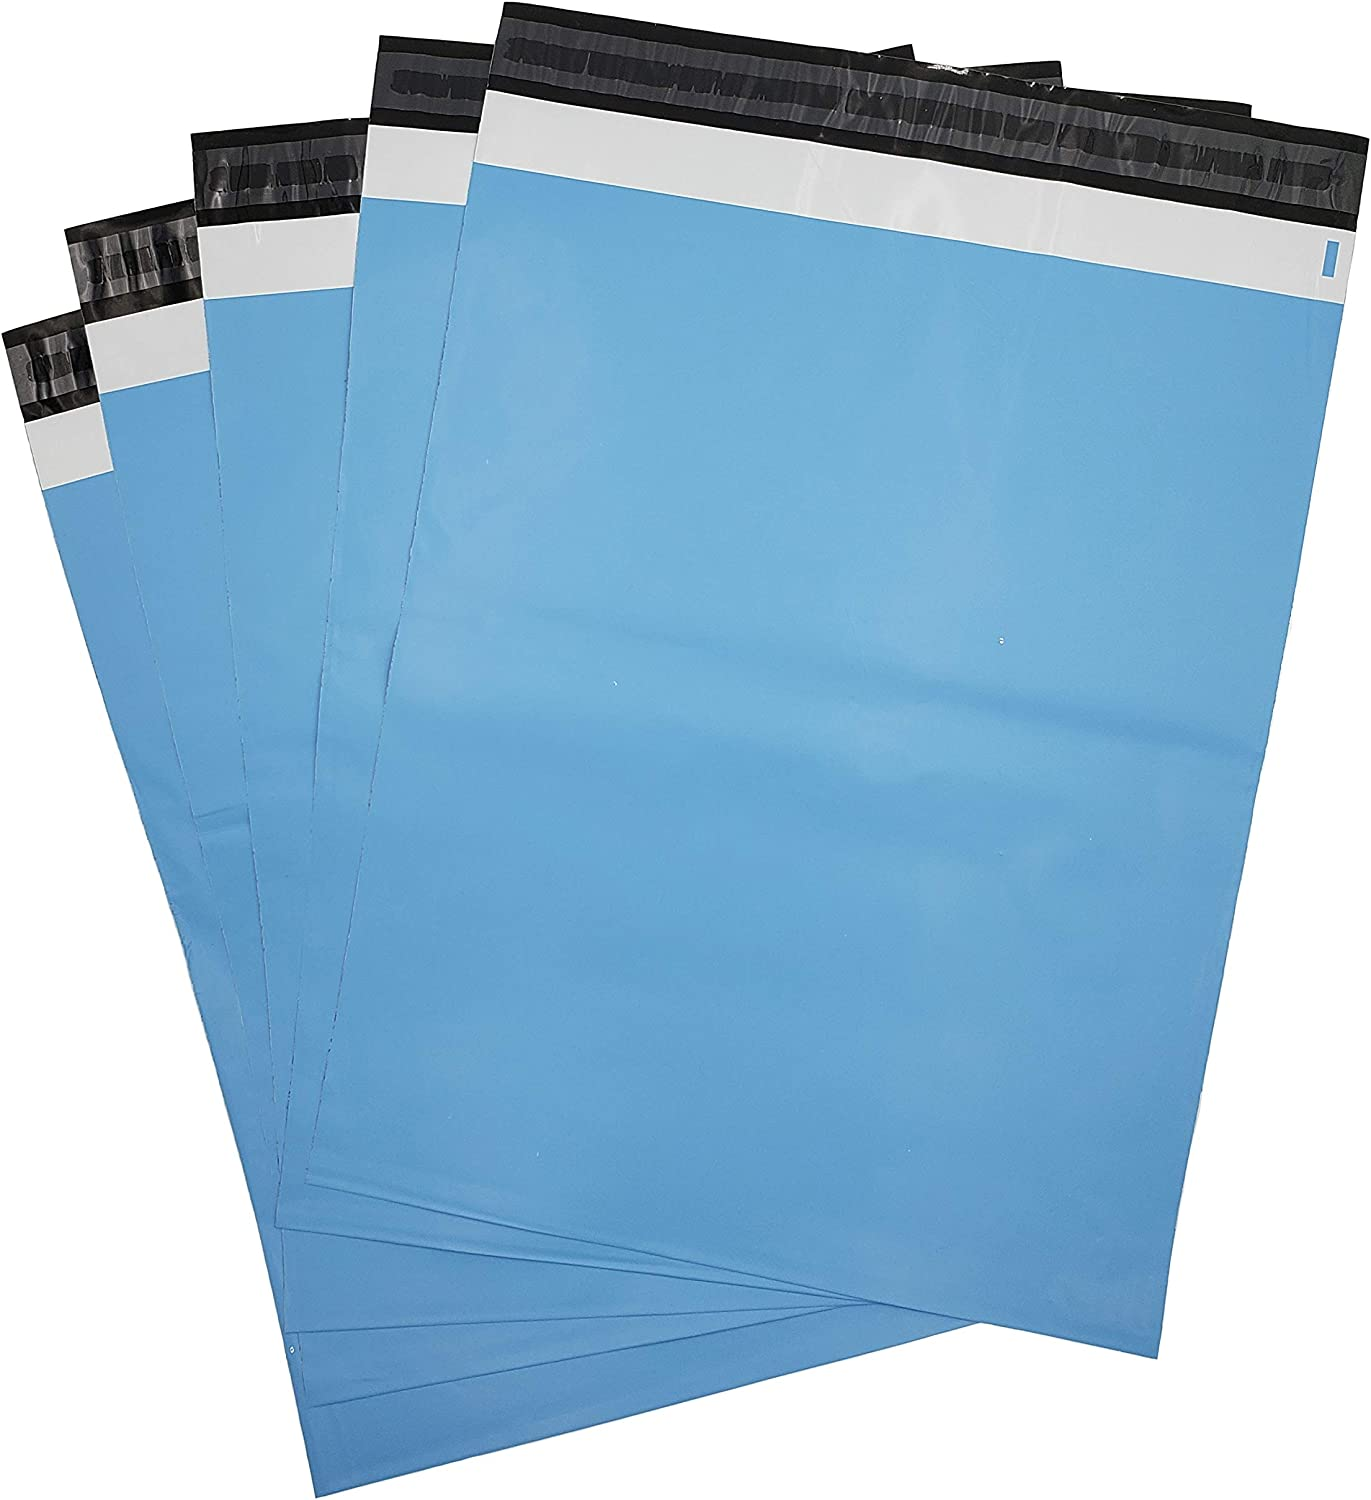 Ecofriendly Poly Mailer Bags Blue 14.5 x 18.8 Biodegradable Mailers 50pcs Mailer with Adhesive Strip Waterproof and Tearproof mailing bags Compostable mailers,Poly Mailer Envelope with self Seal